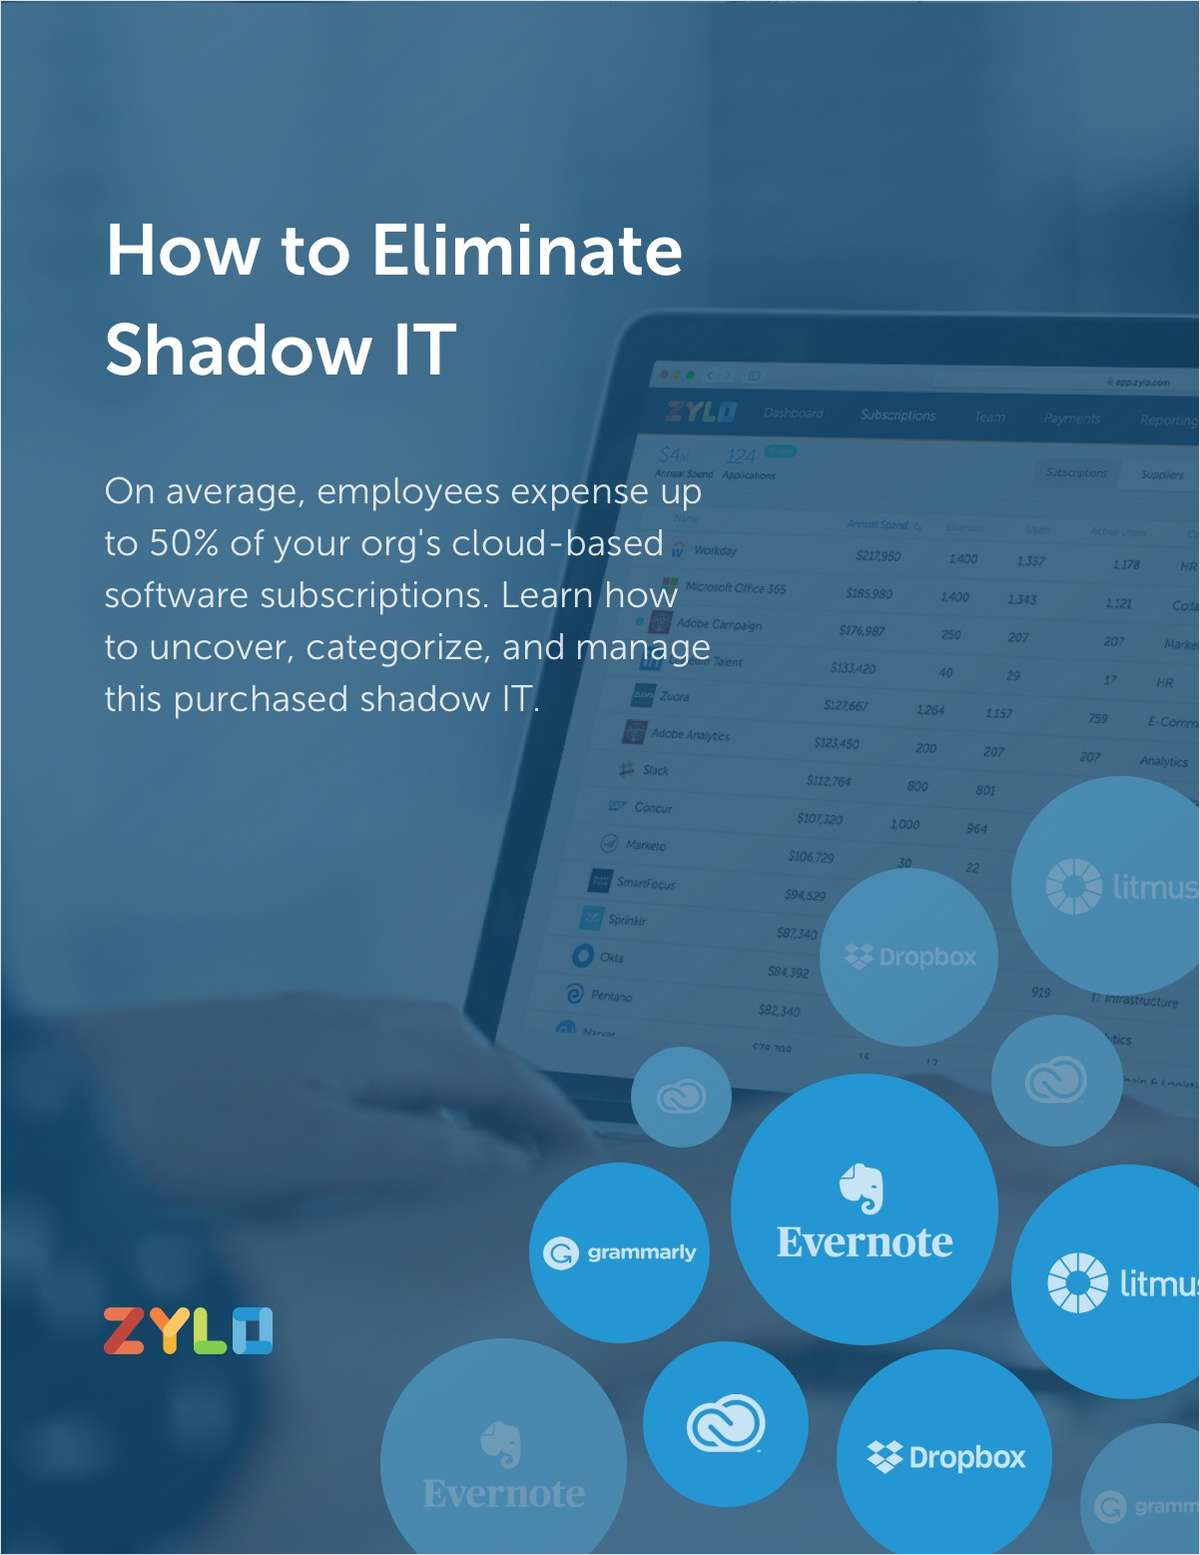 How to Eliminate Shadow IT